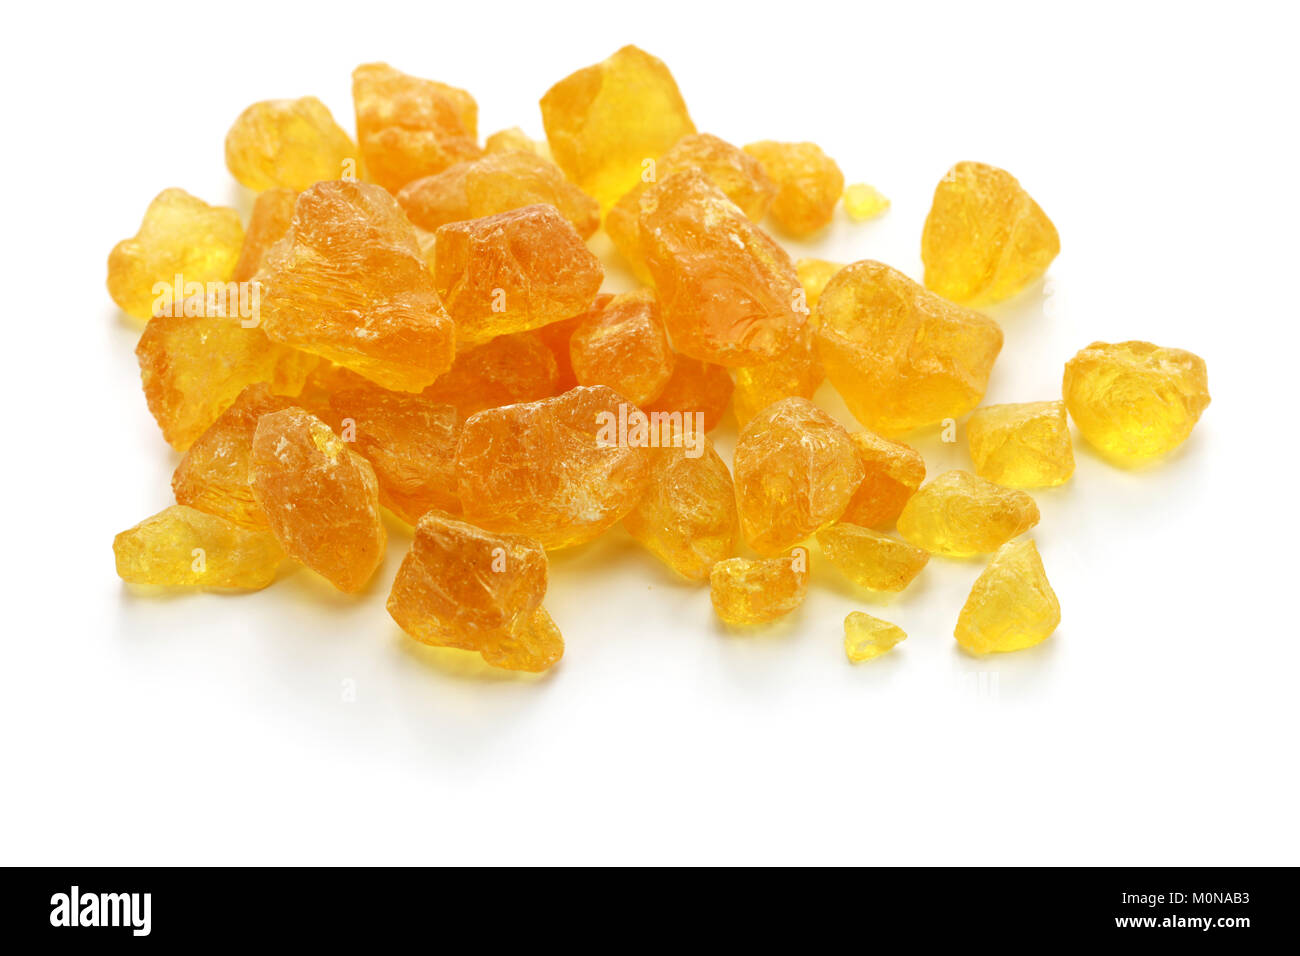 resin from copal tree, incense ingredient - Stock Image